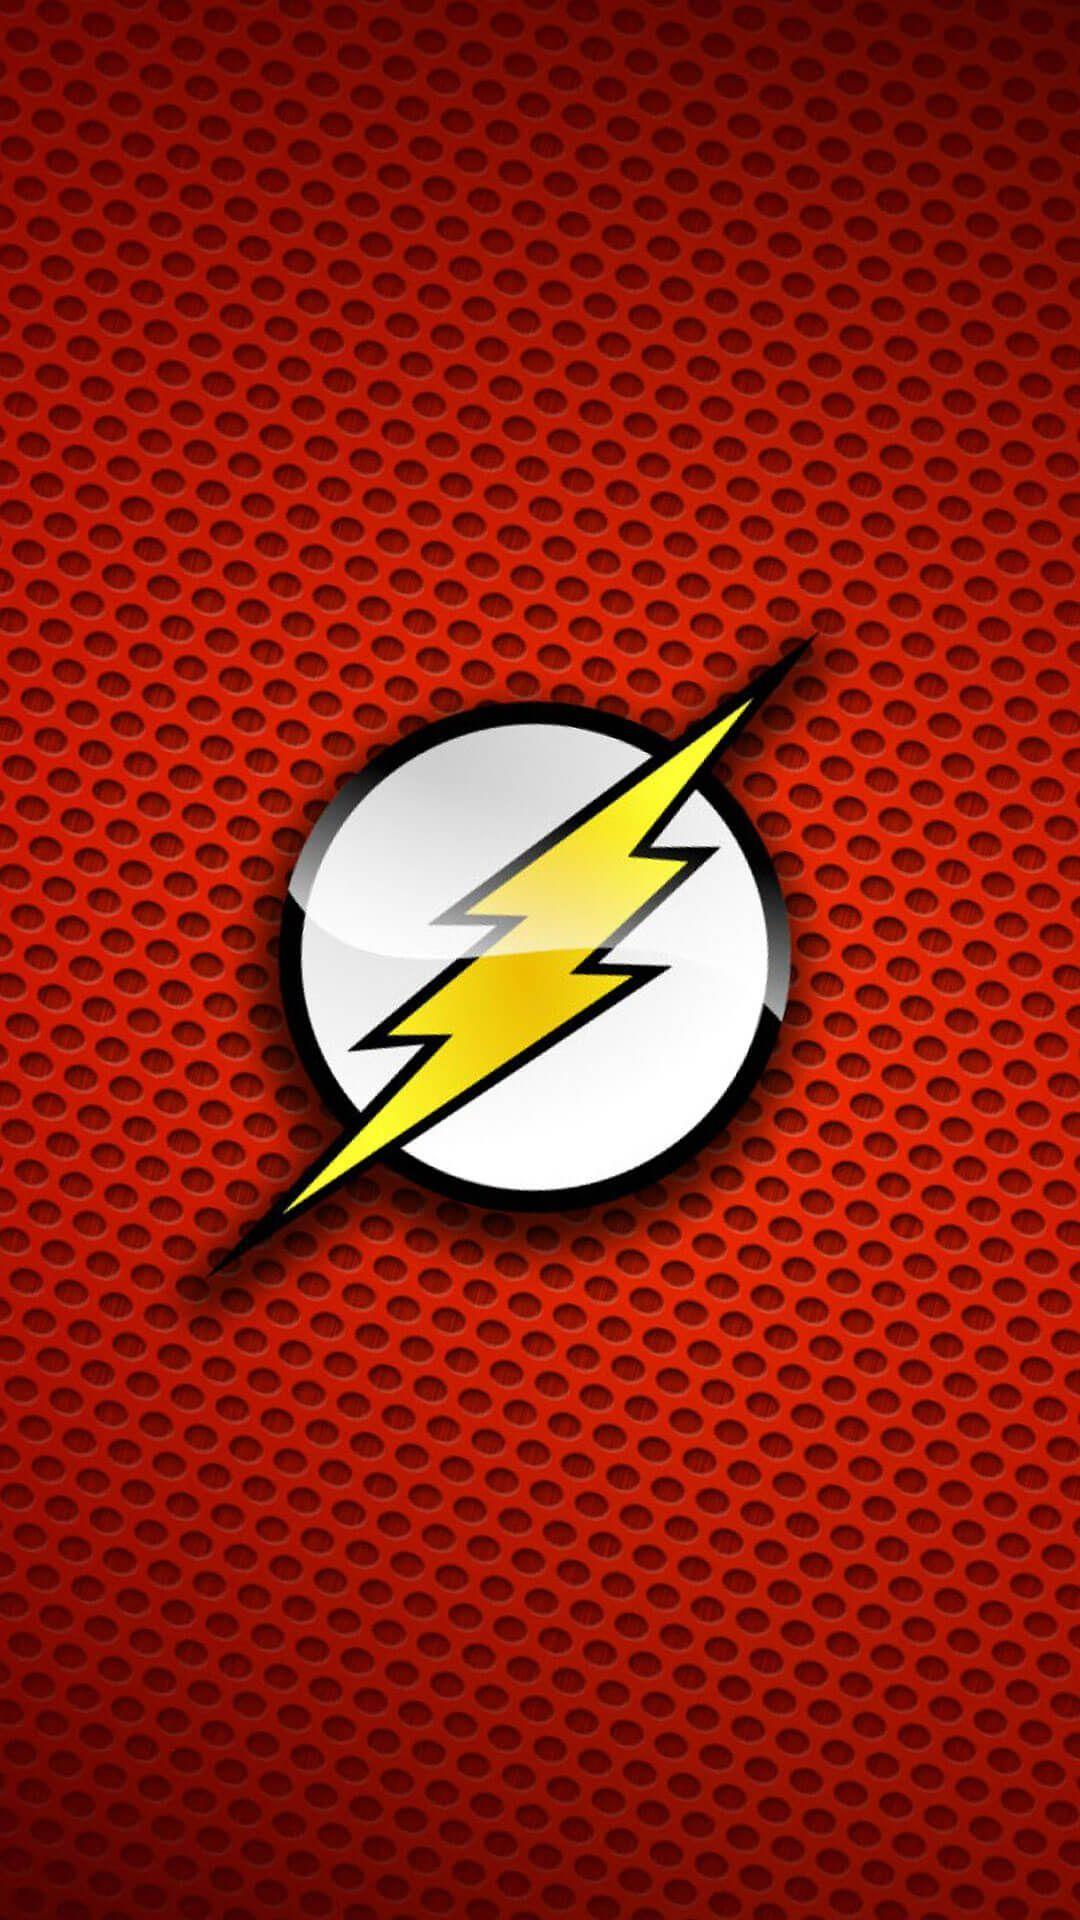 The Flash Logo iPhone 6 Wallpapers